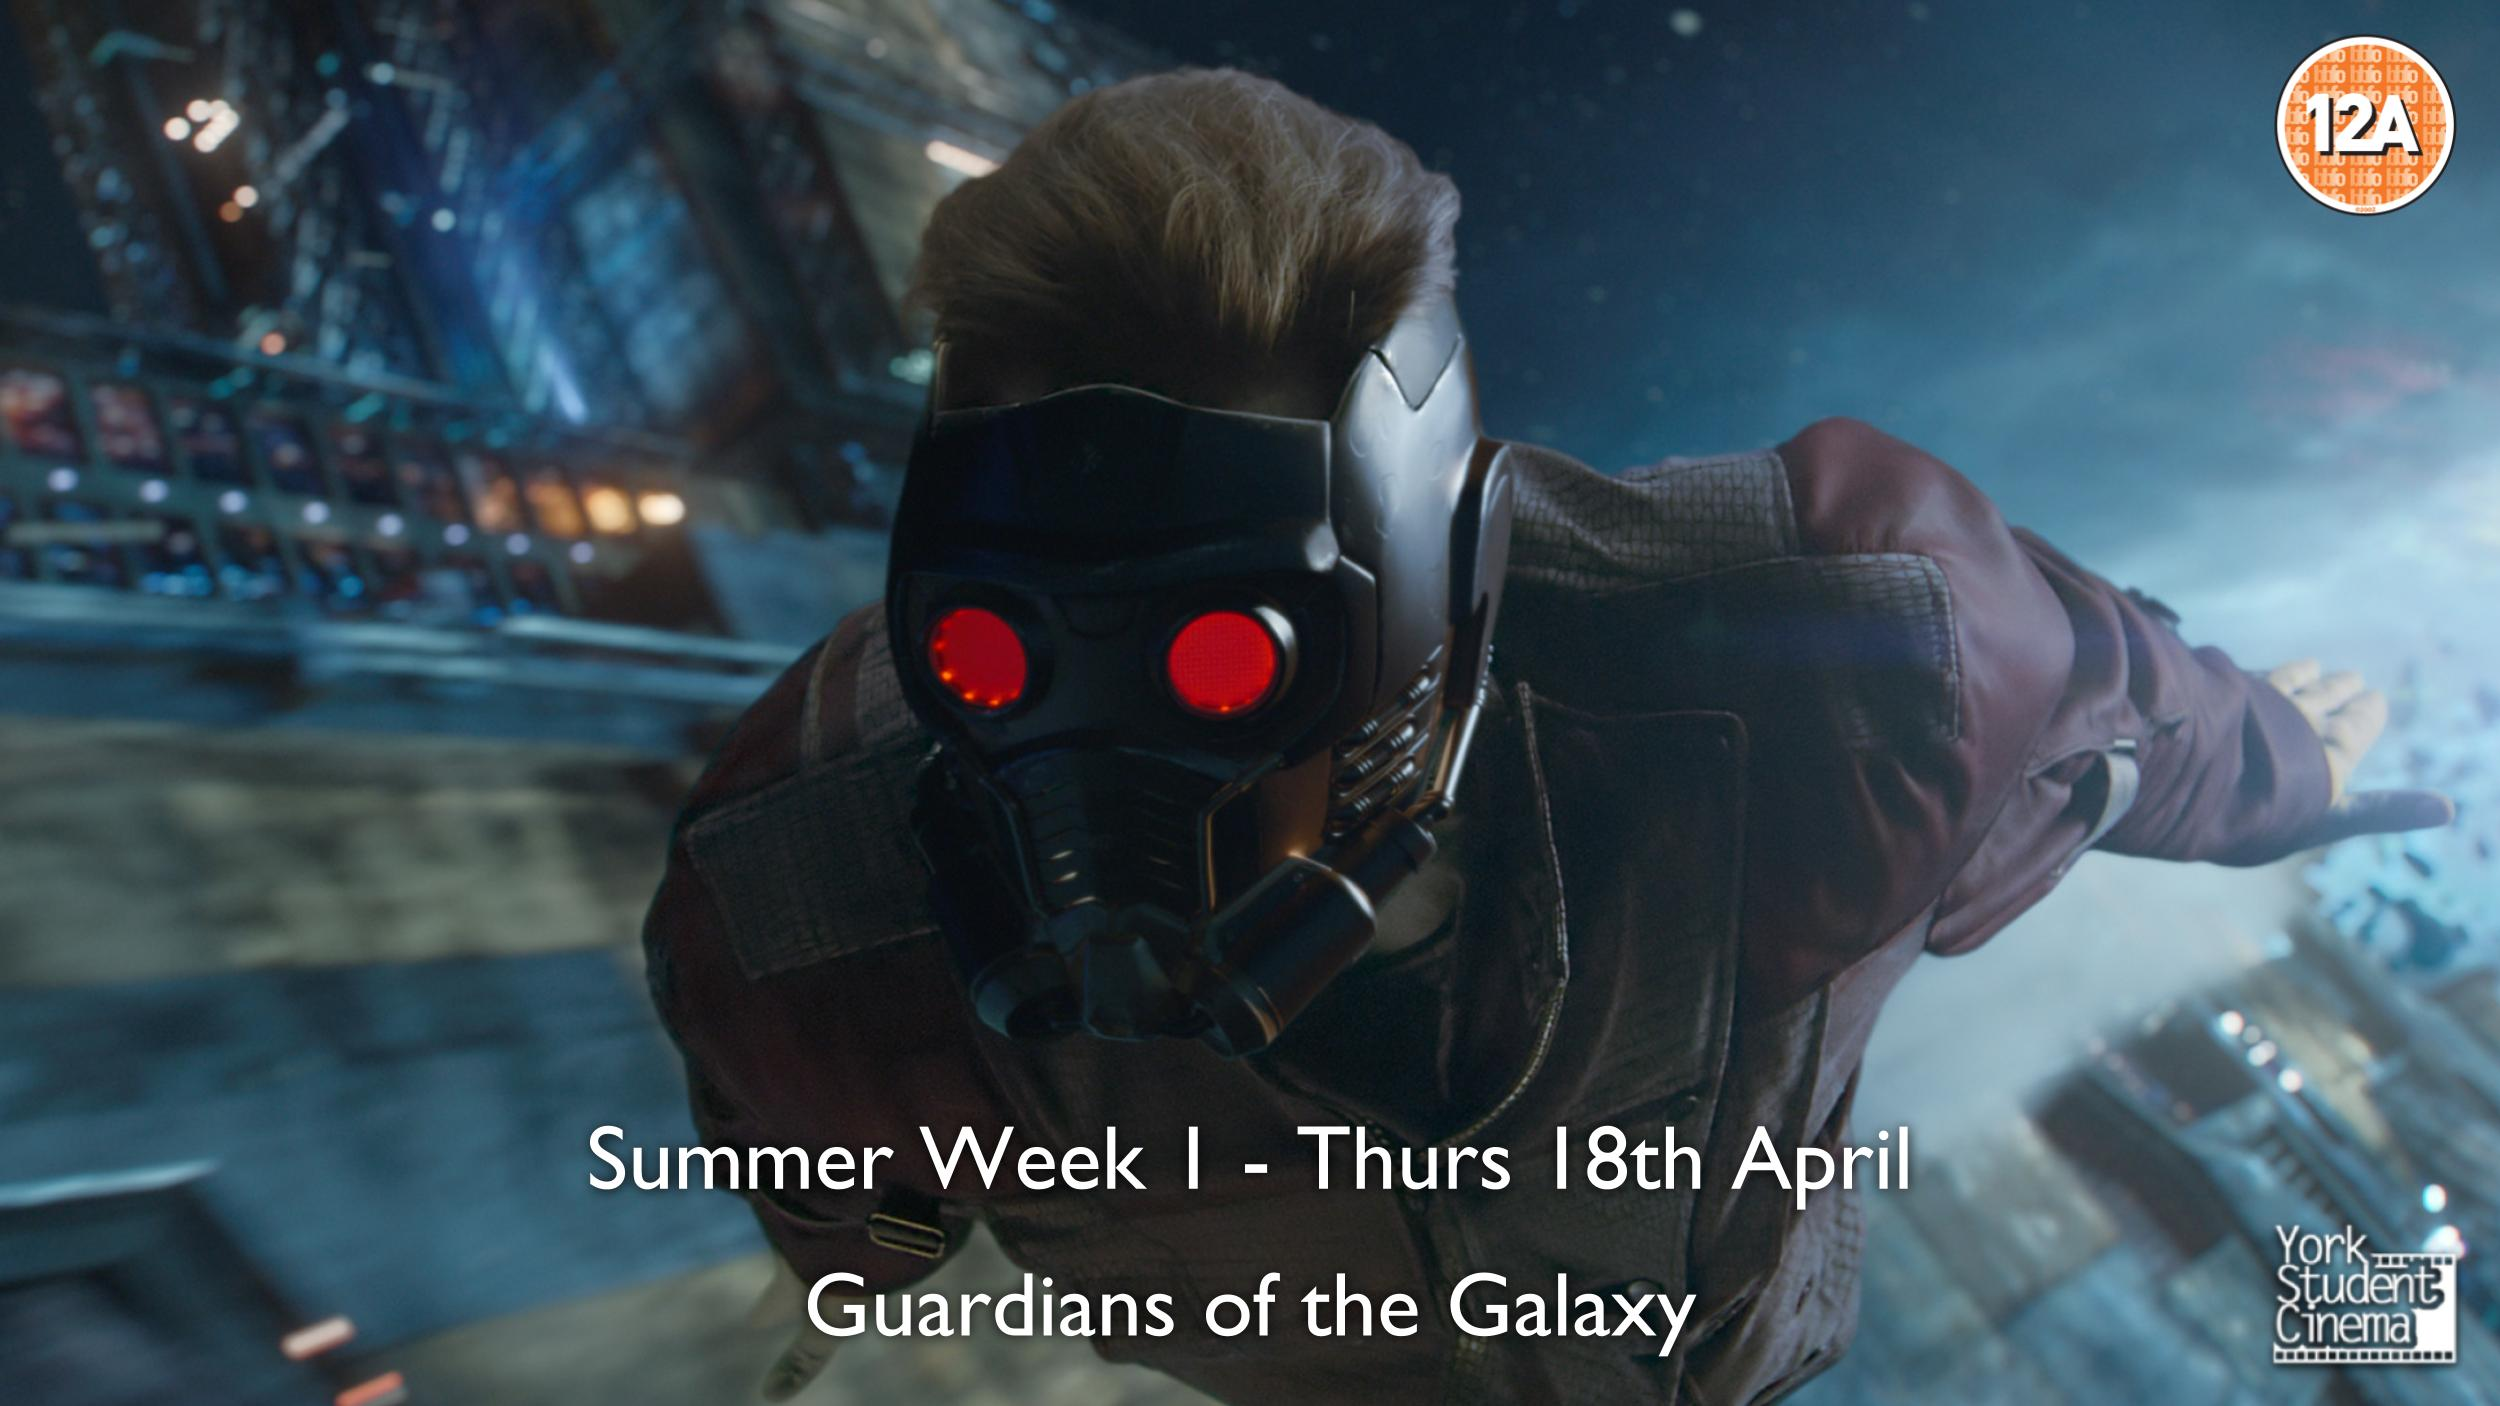 YSC Screening of Guardians of the Galaxy